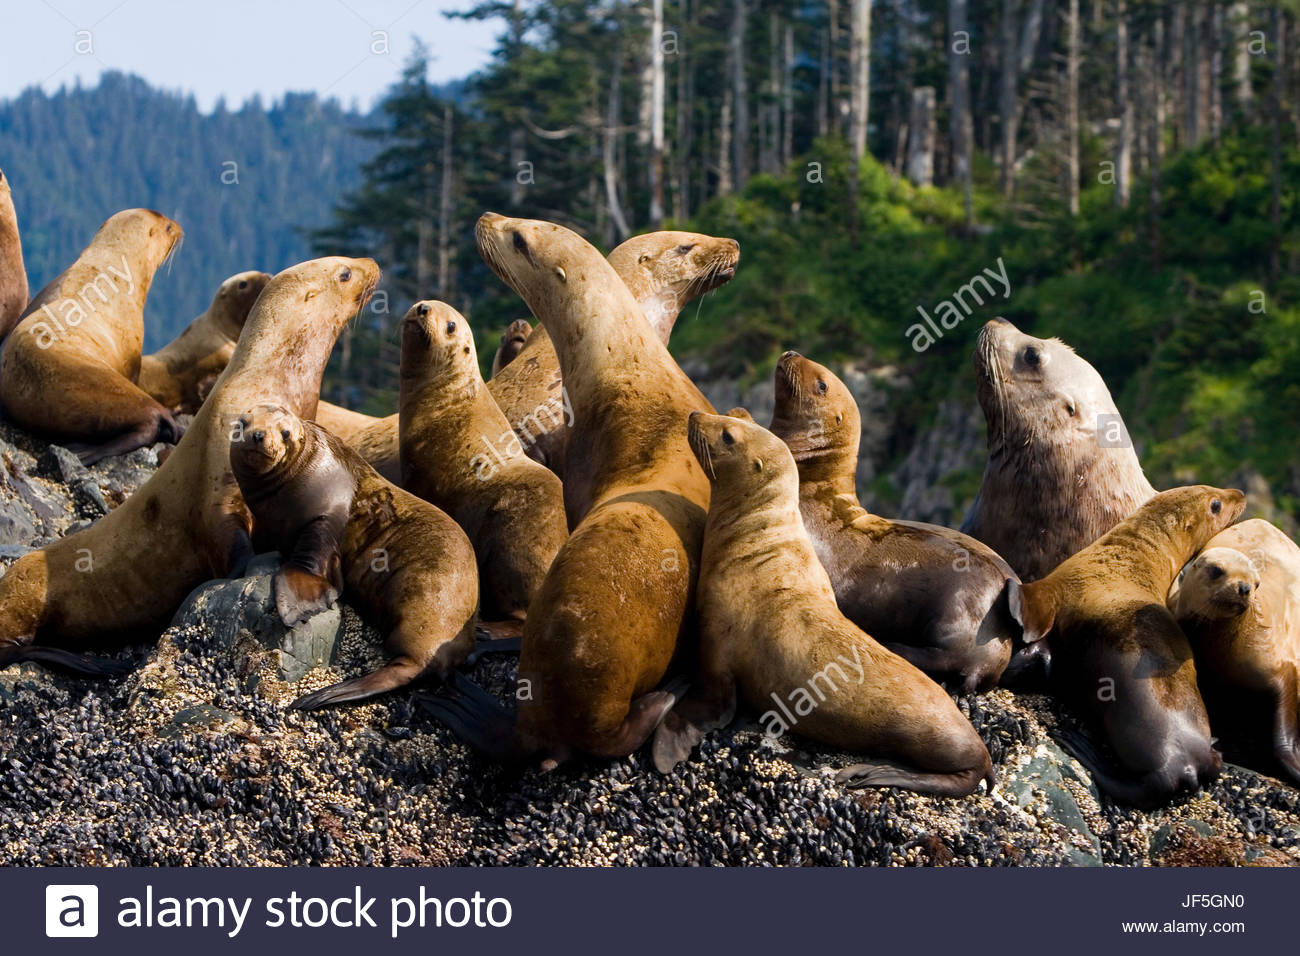 A group of Steller sea lion, Eumetopias jubatus, resting on a rock. - Stock Image